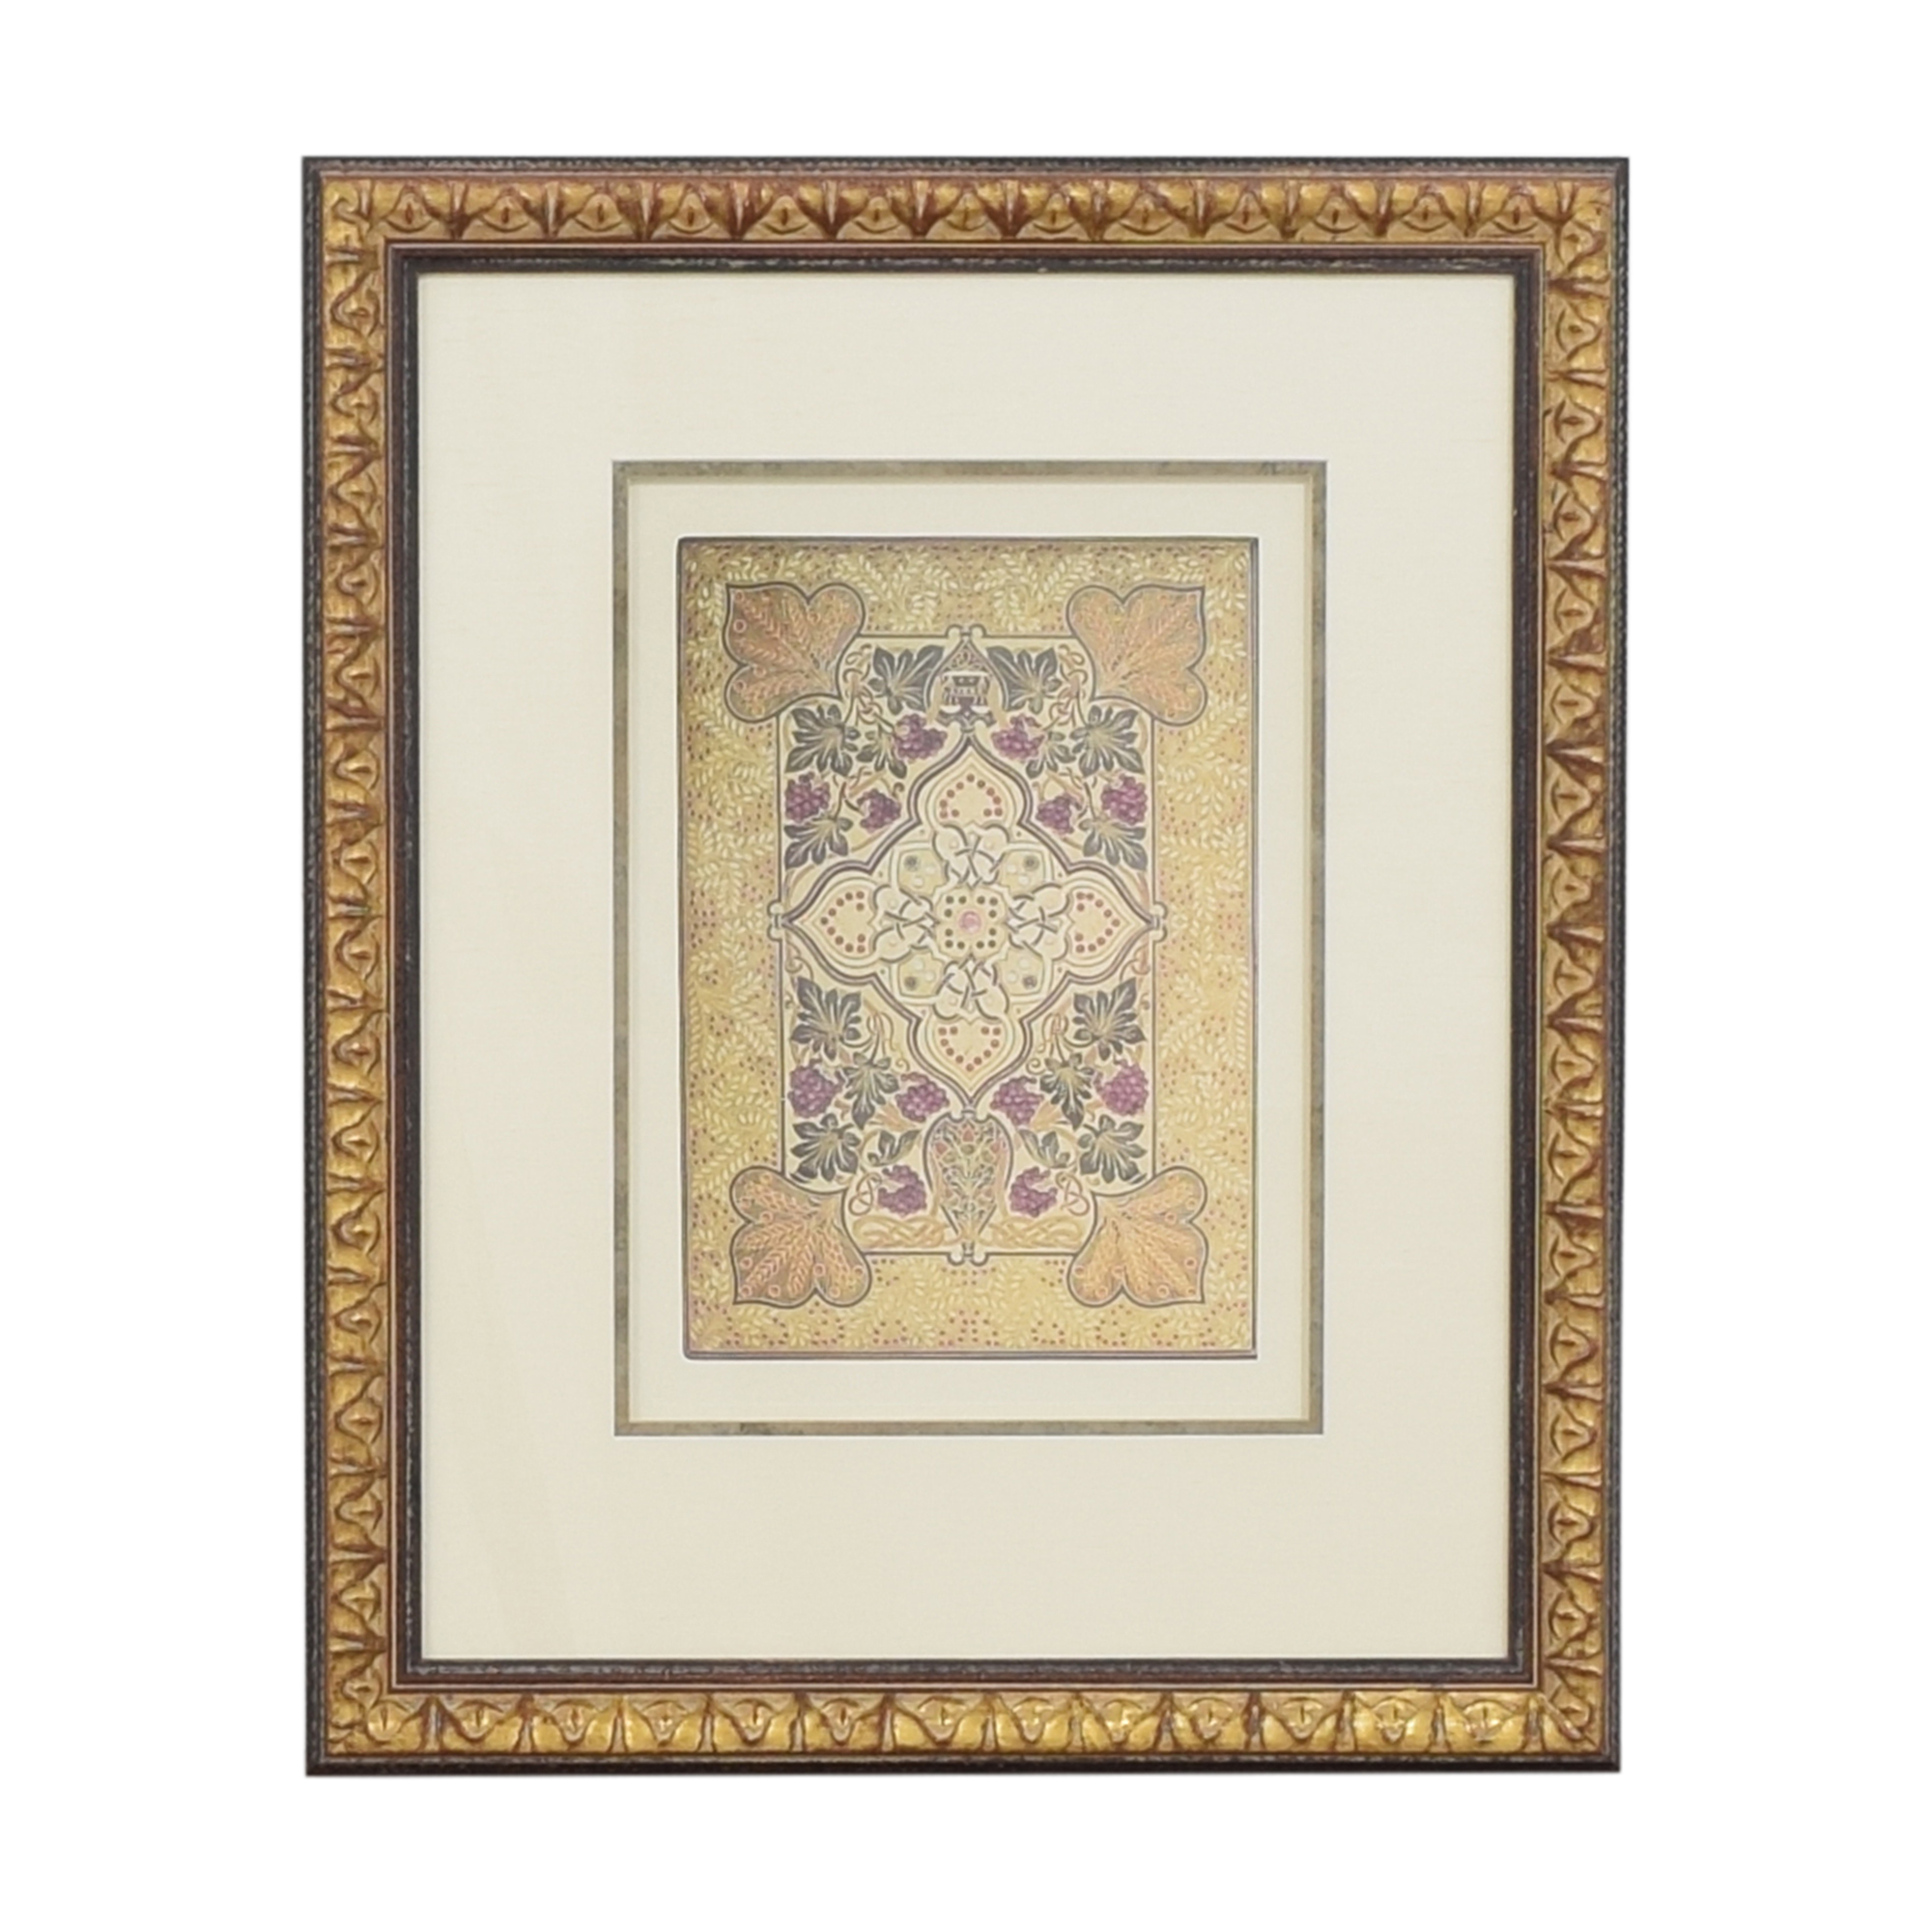 Ethan Allen Ethan Allen Jeweled Cover Framed Wall Art coupon